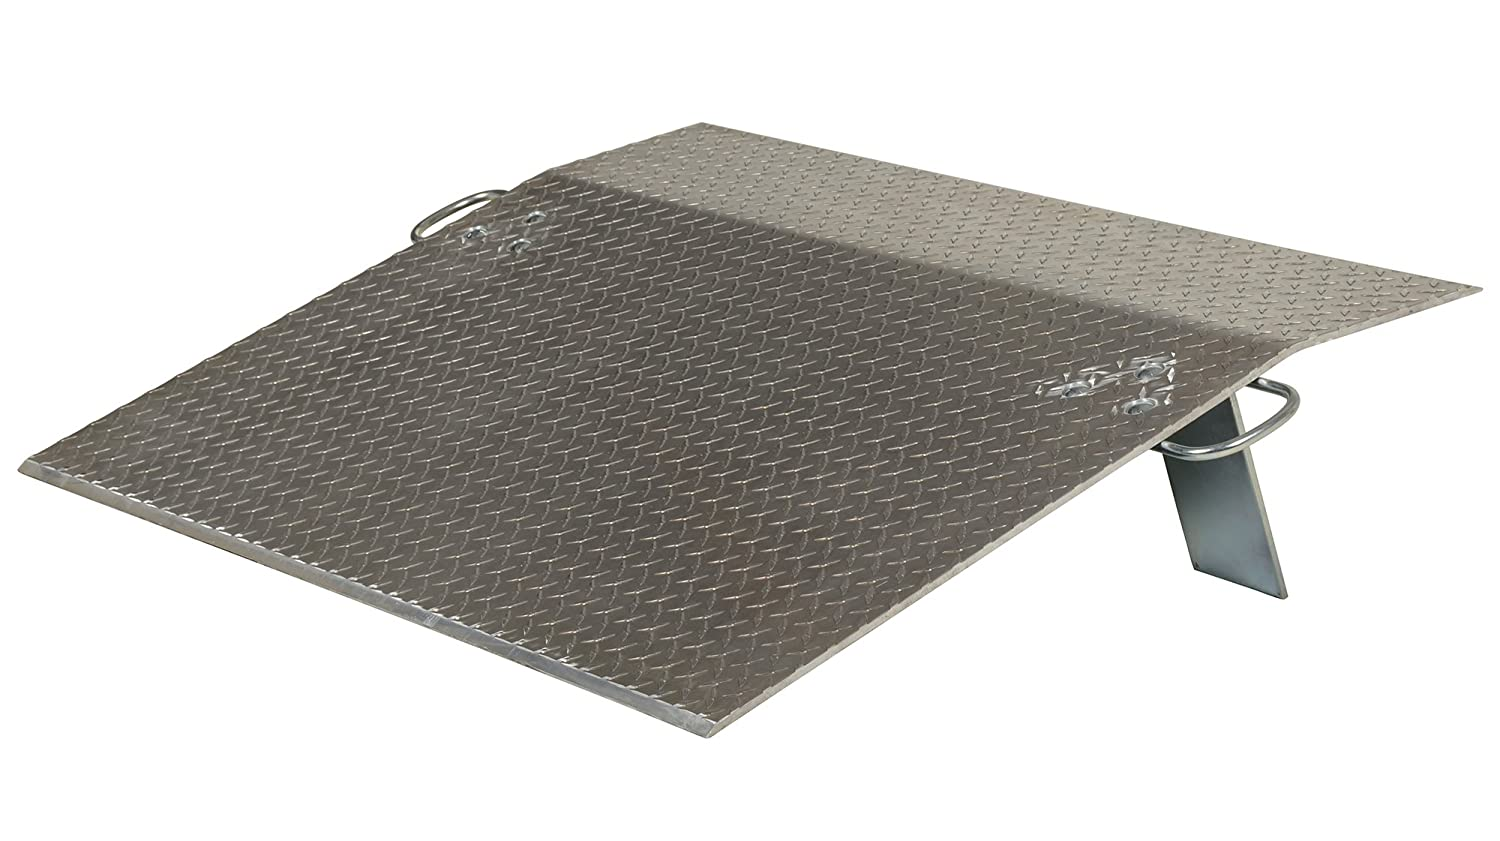 Vestil E-3024 Aluminum Economizer Dock Plate, 3,000-lb. Capacity, 24' Length, 30' Usable Width, 36' Height Difference, 3/8' Plate Thickness 24 Length 30 Usable Width 36 Height Difference 3/8 Plate Thickness Vestil Manufacturing Corp